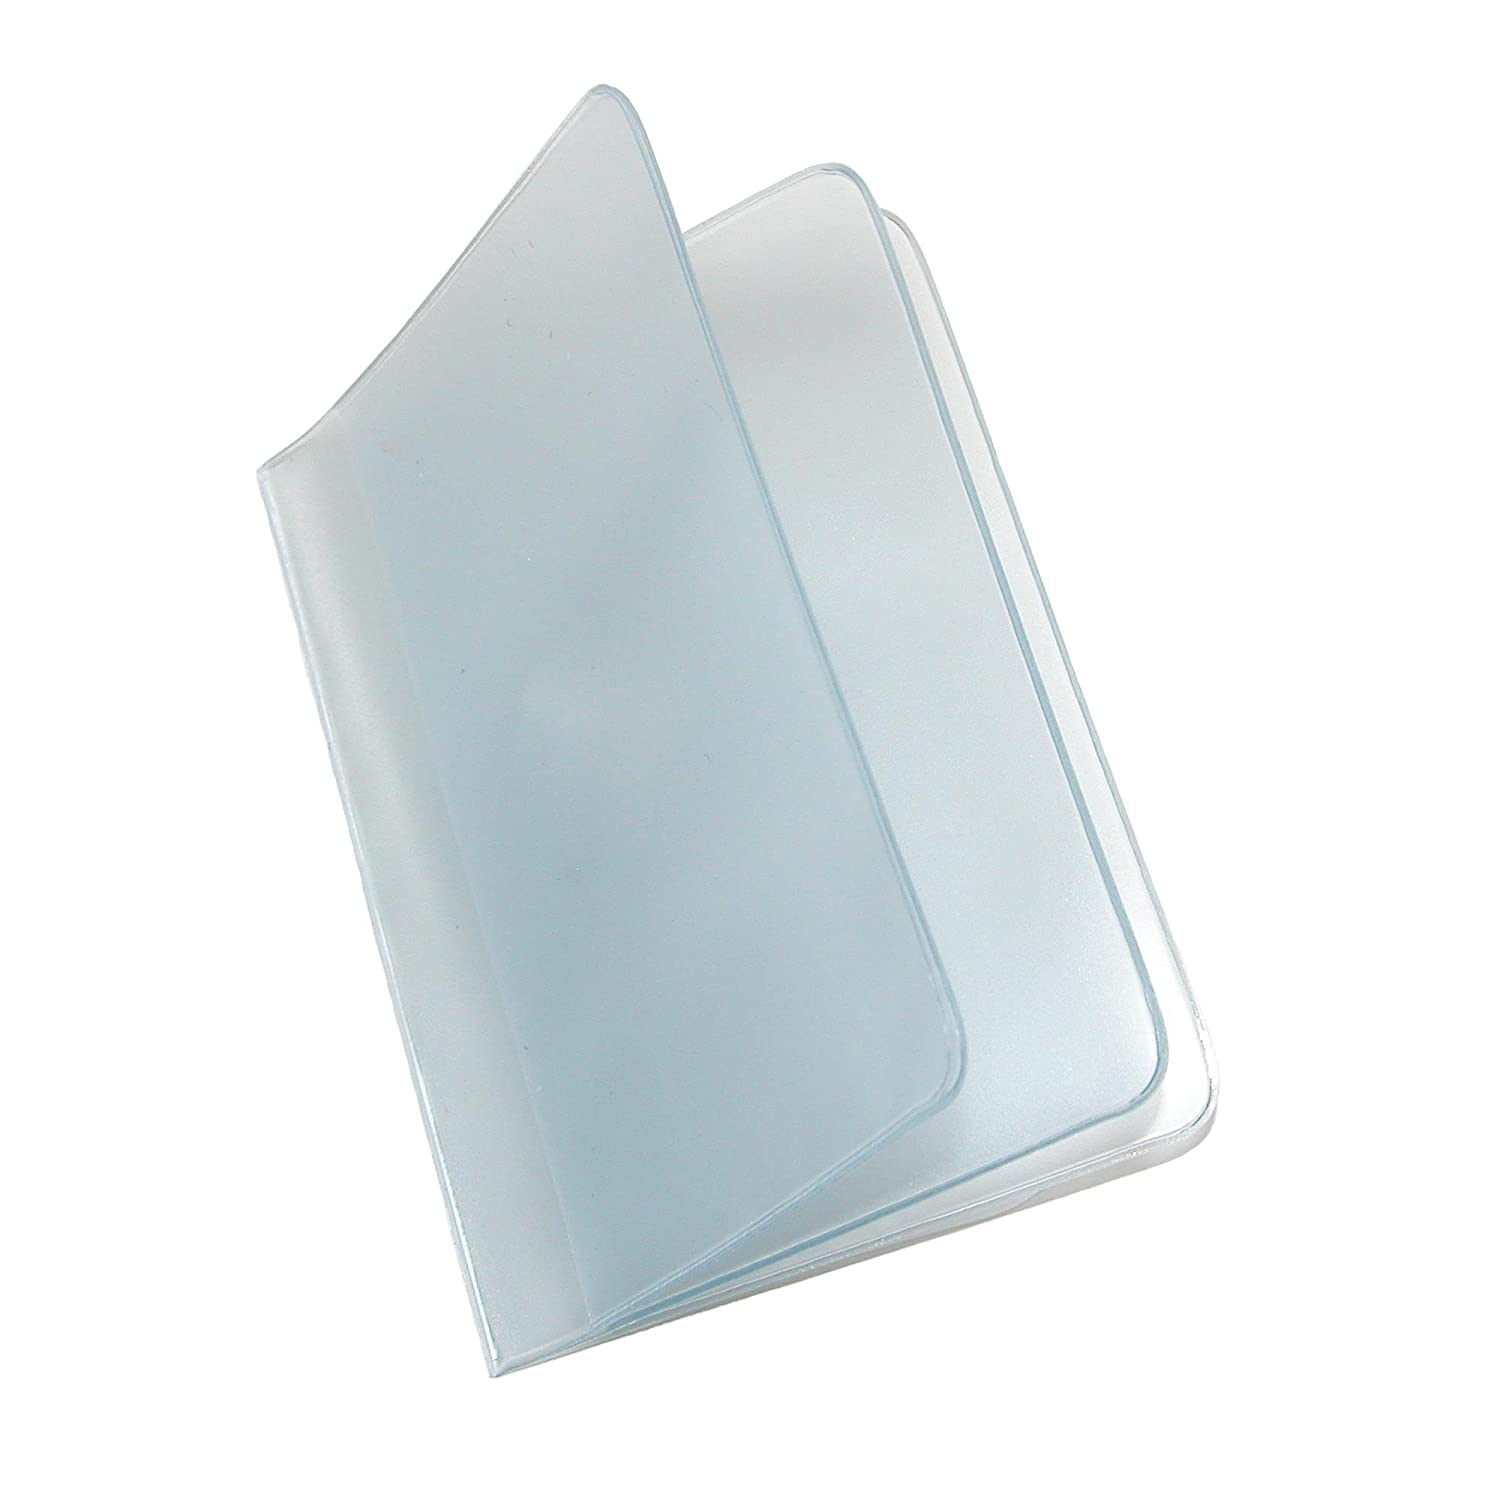 Buxton Vinyl Window Insert for Bi-Fold and Tri-Fold Wallets 4331224695